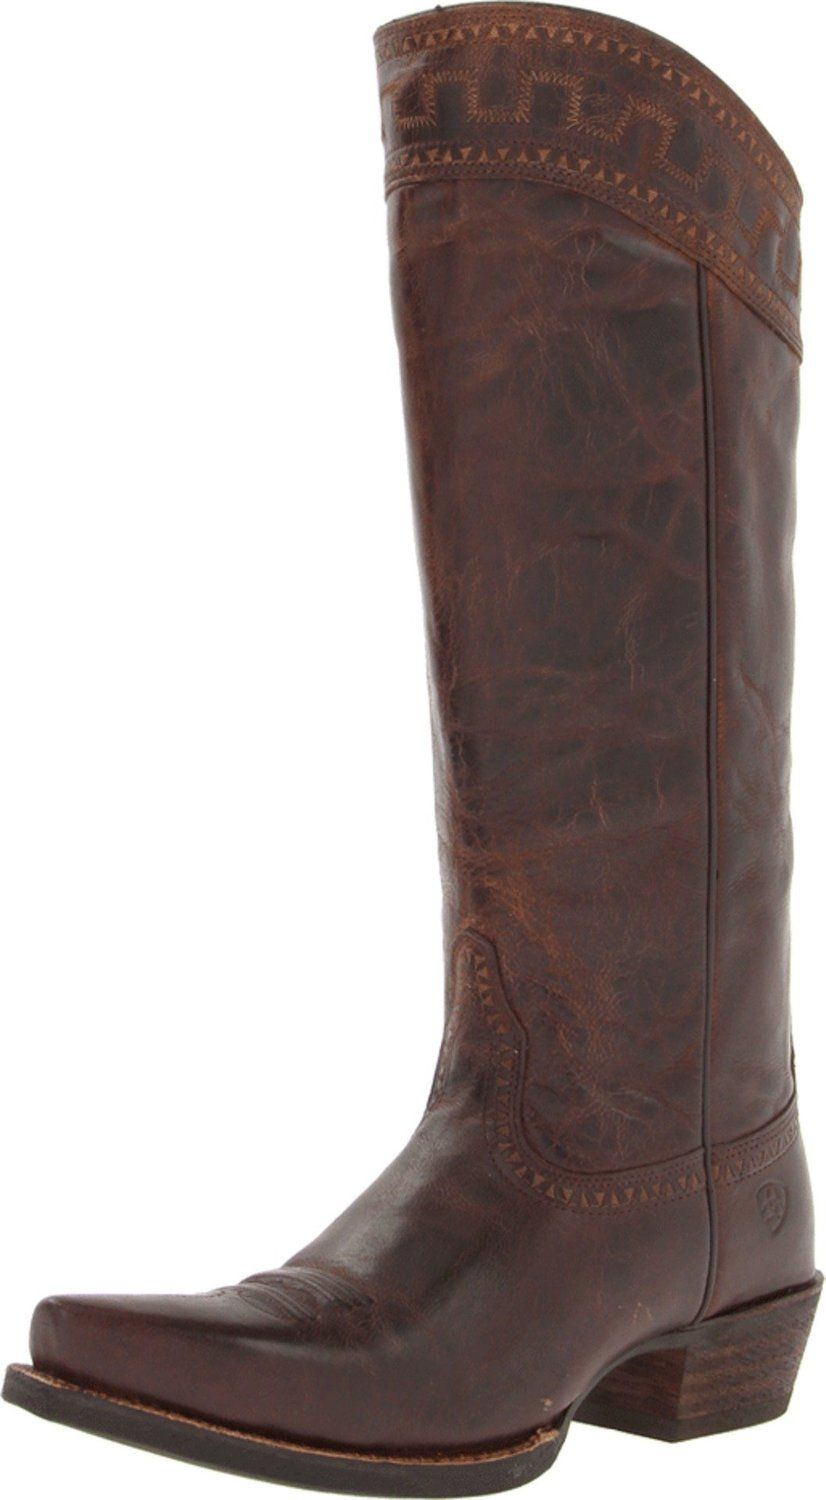 514e7968a89aad Ariat Women s Sahara Western Cowboy Boot   Insider s special review you  can t miss. Read more   Cowgirl boots